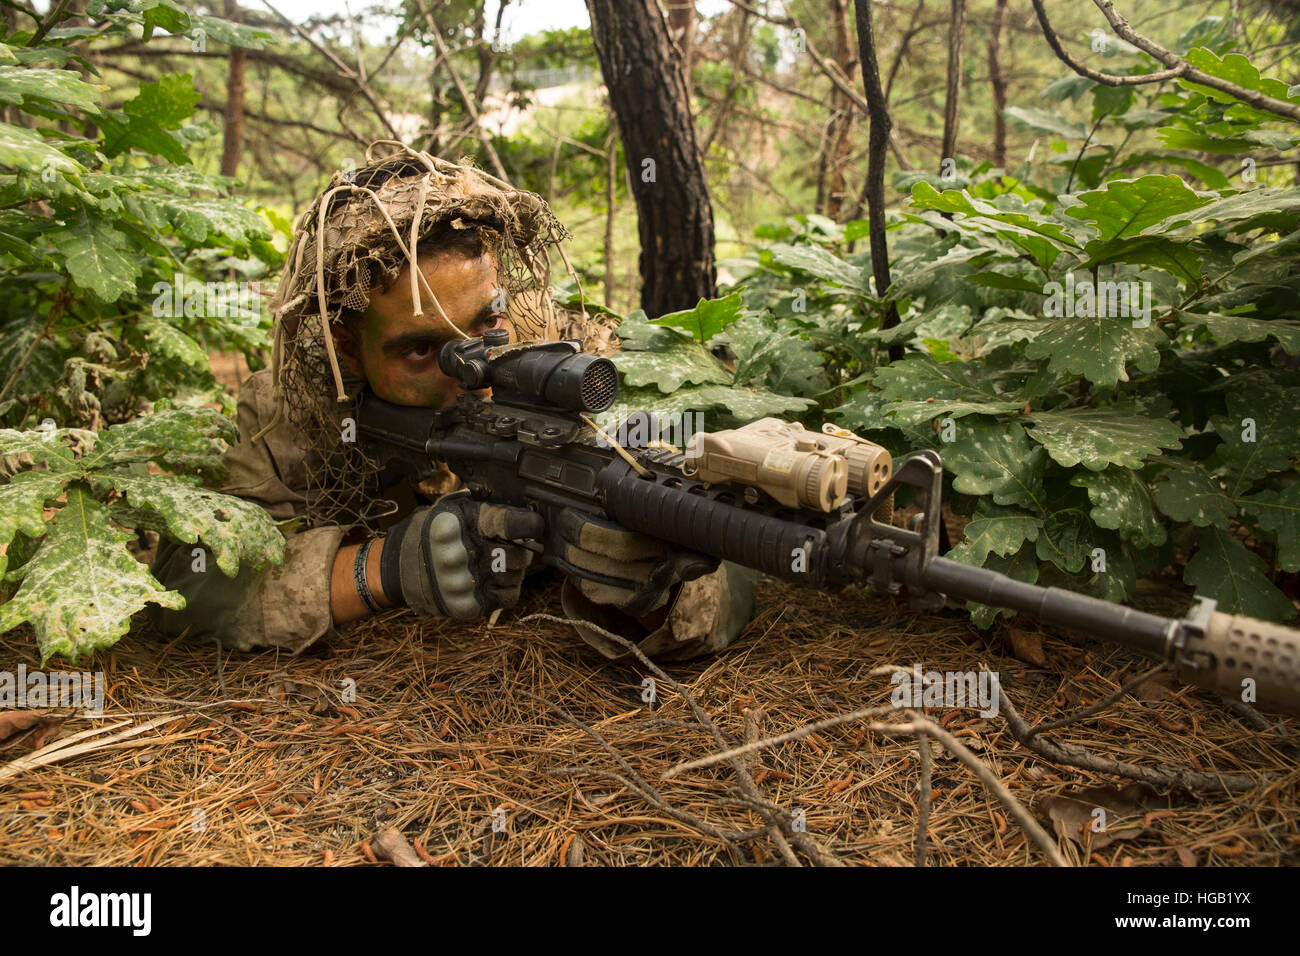 U.S. Marine scout sniper provides security for his unit in South Korea. - Stock Image